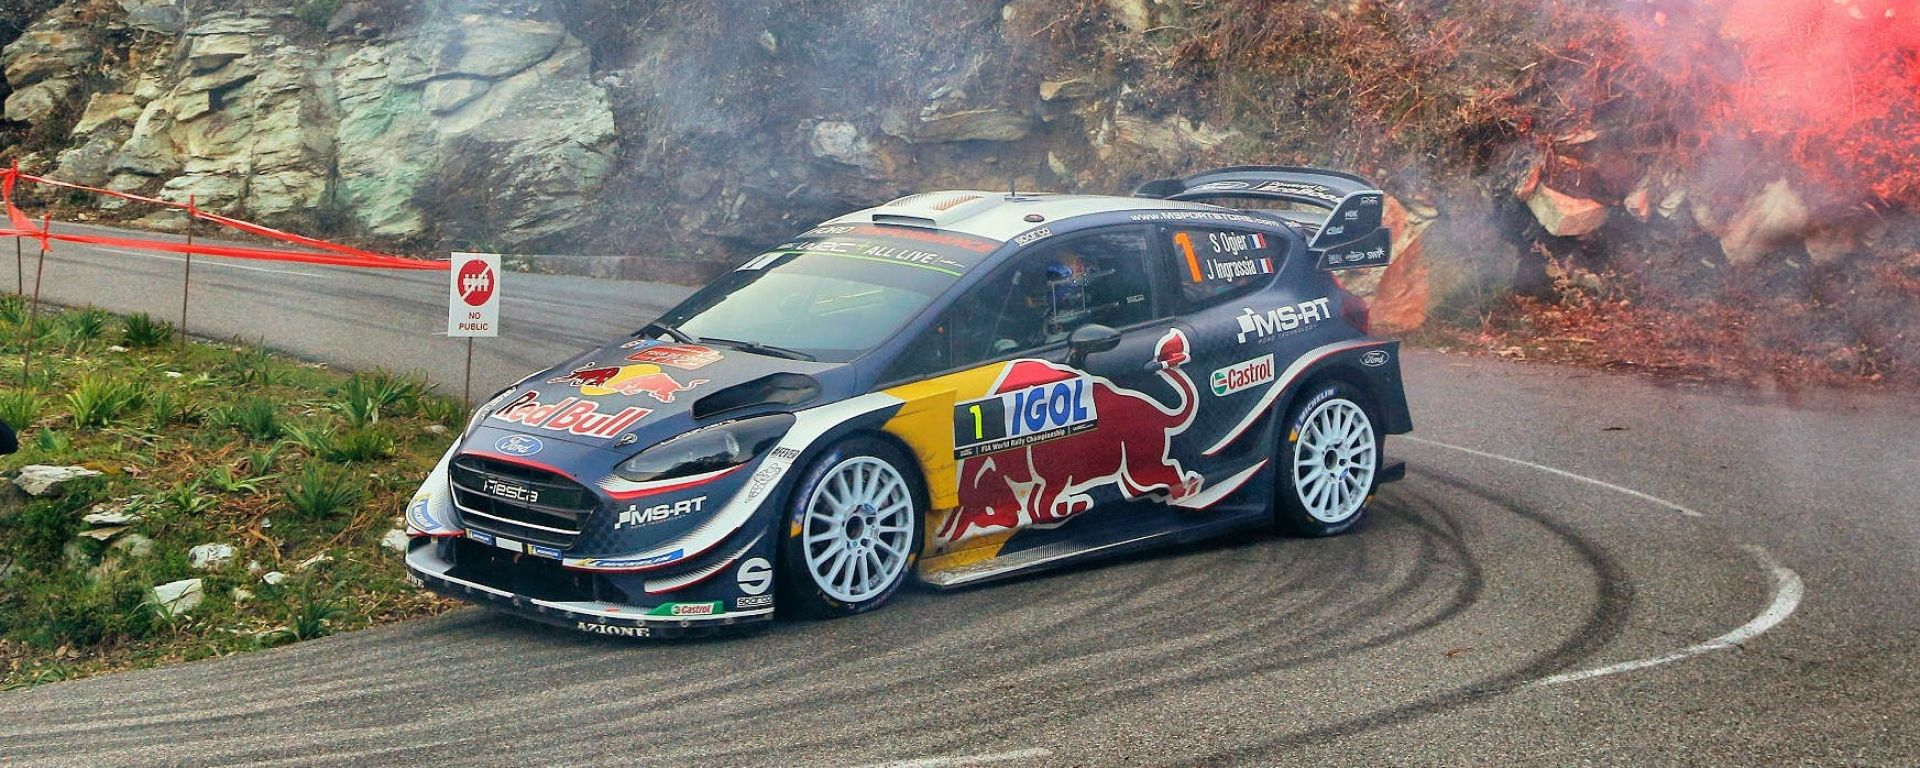 wrc 2018 rally di corsica ogier e ford davanti a tutti nella prima giornata motorbox. Black Bedroom Furniture Sets. Home Design Ideas